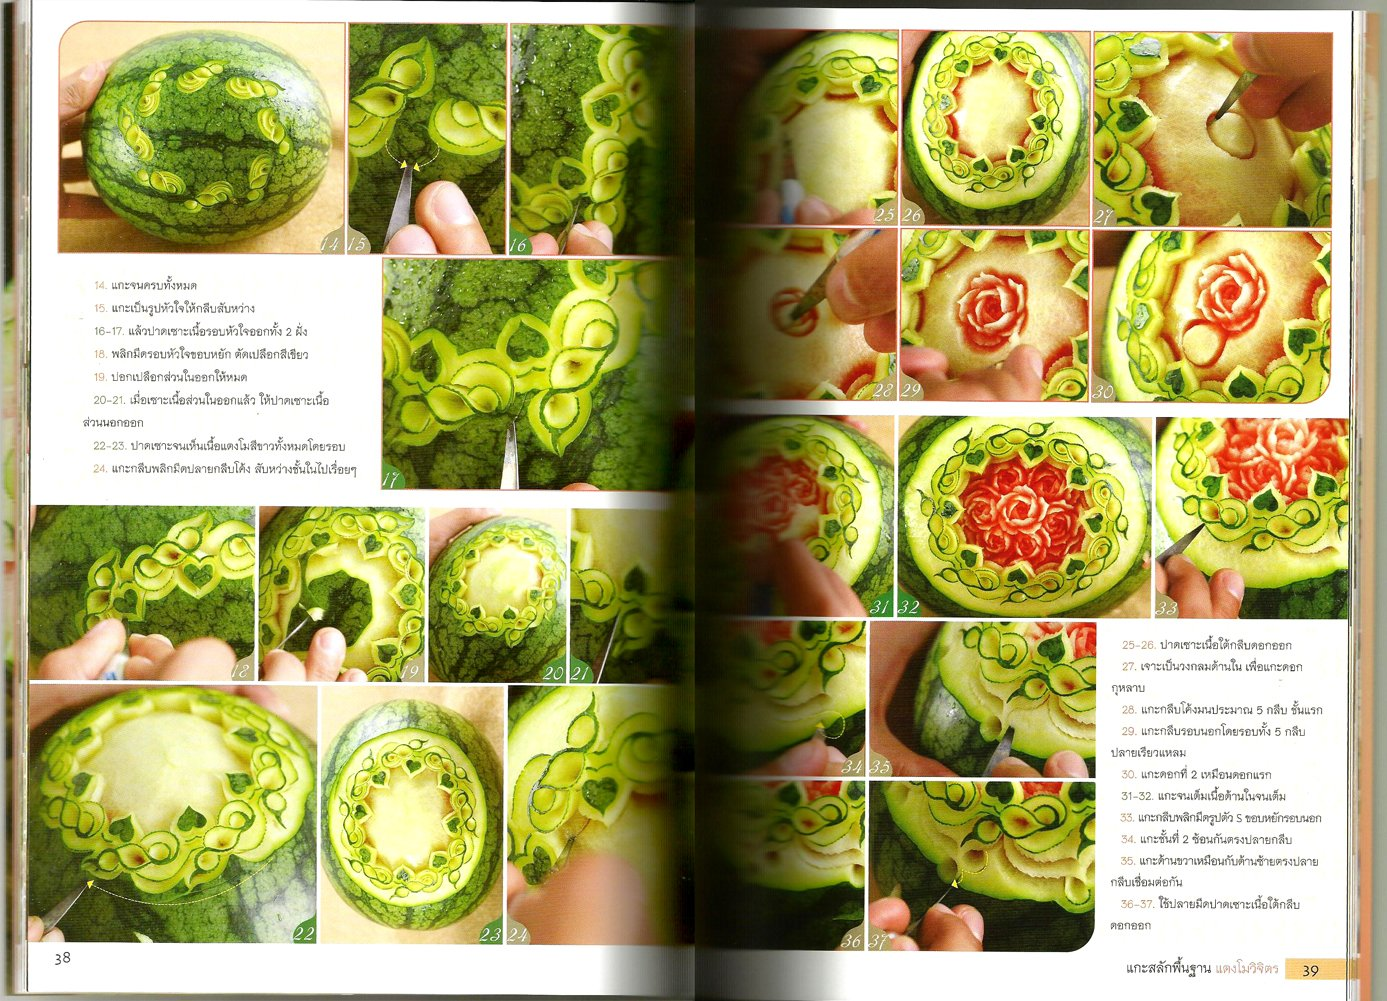 Vegetable carving step by step procedure - Thai Vegetable Fruit Carving Book On Watermelon Learn Step By Step Amazon Co Uk Office Products